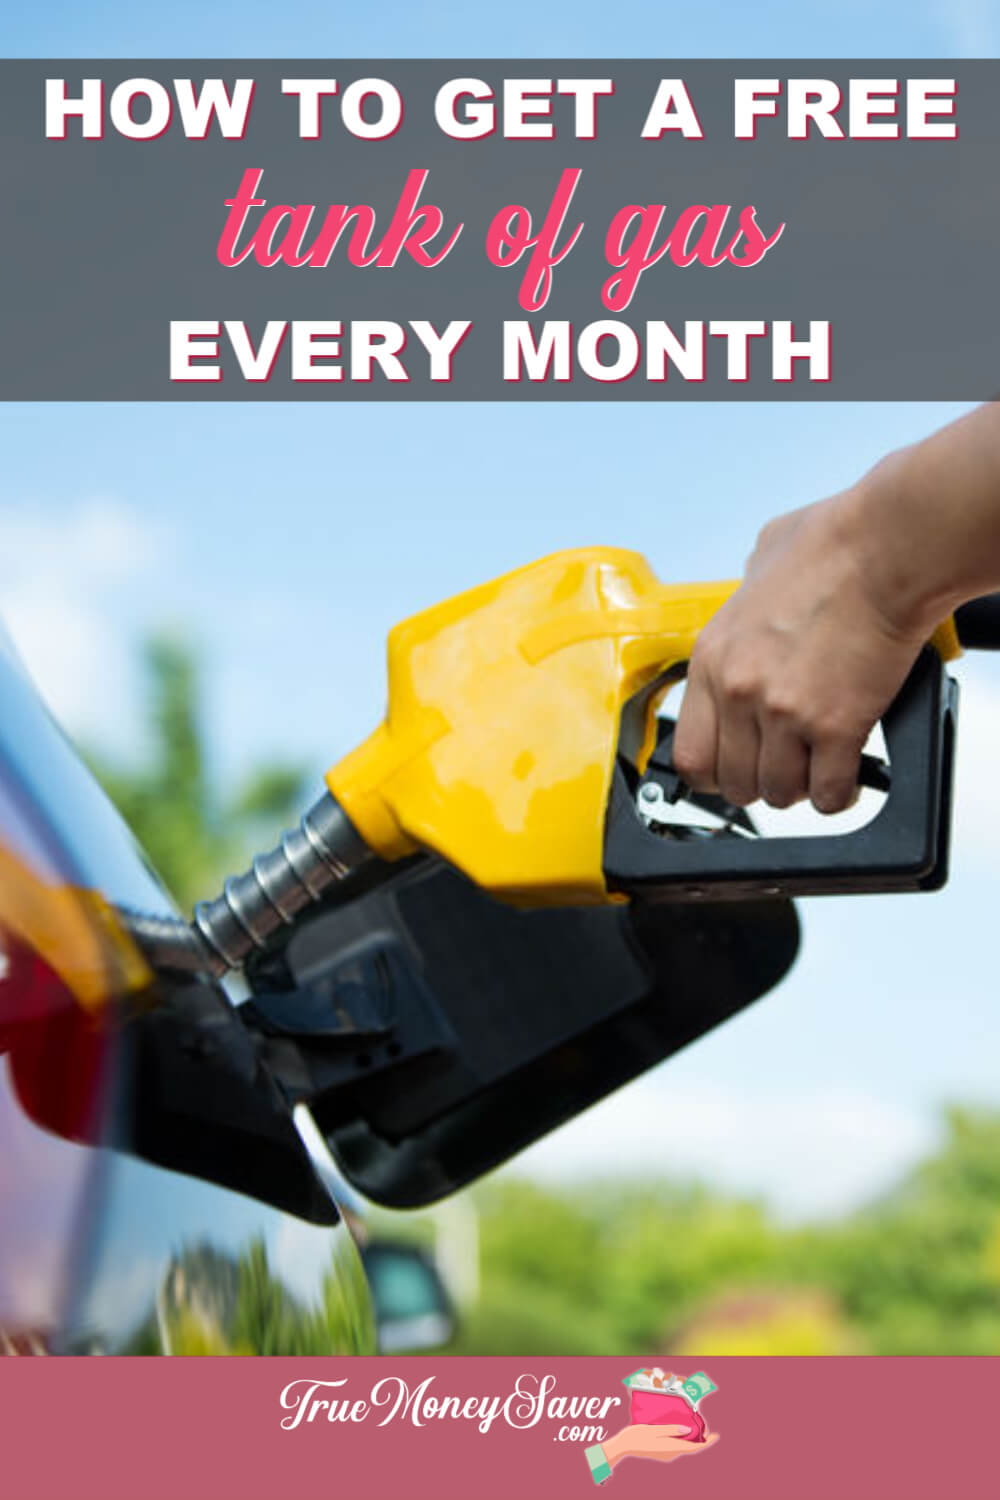 Cheap Gas: How To Get A FREE Tank Of Gas Every Month